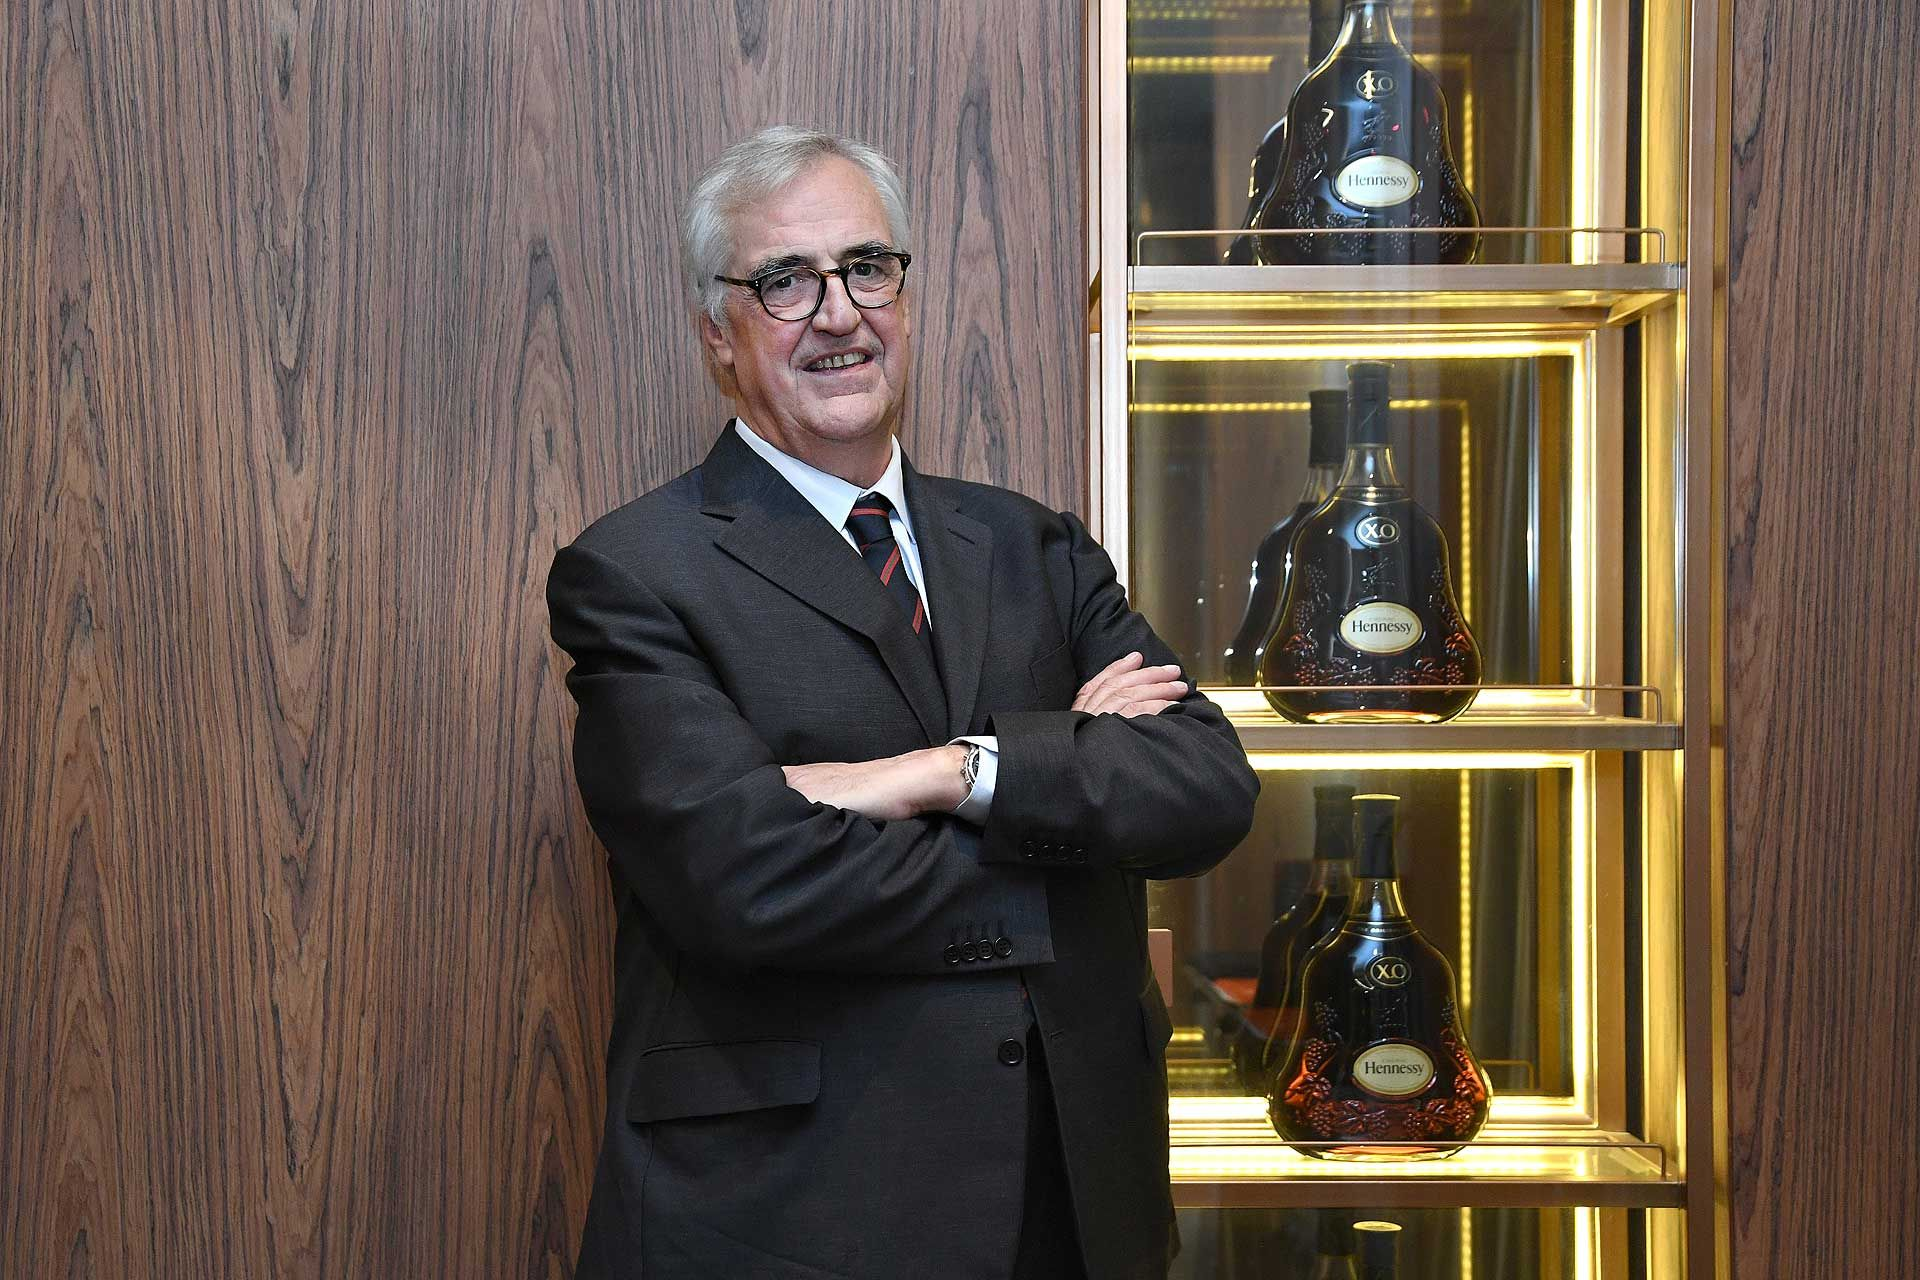 Maurice Hennessy, Yes, That Hennessy, On Cognac & Family Legacy